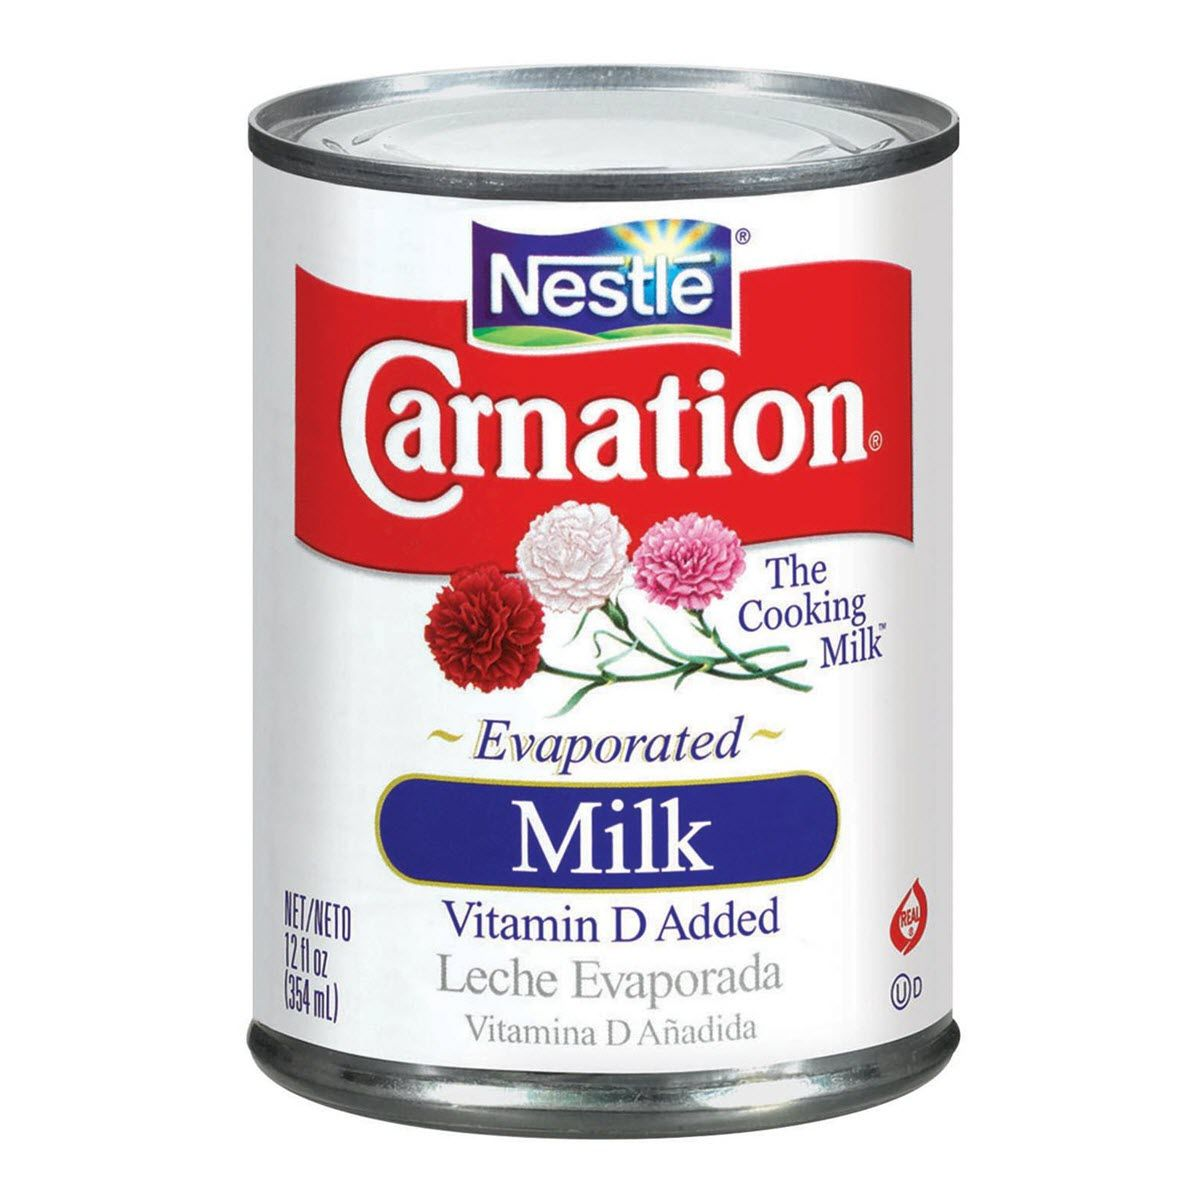 CARNATION Vitamin D Added Evaporated Milk 12 fl. oz. Can